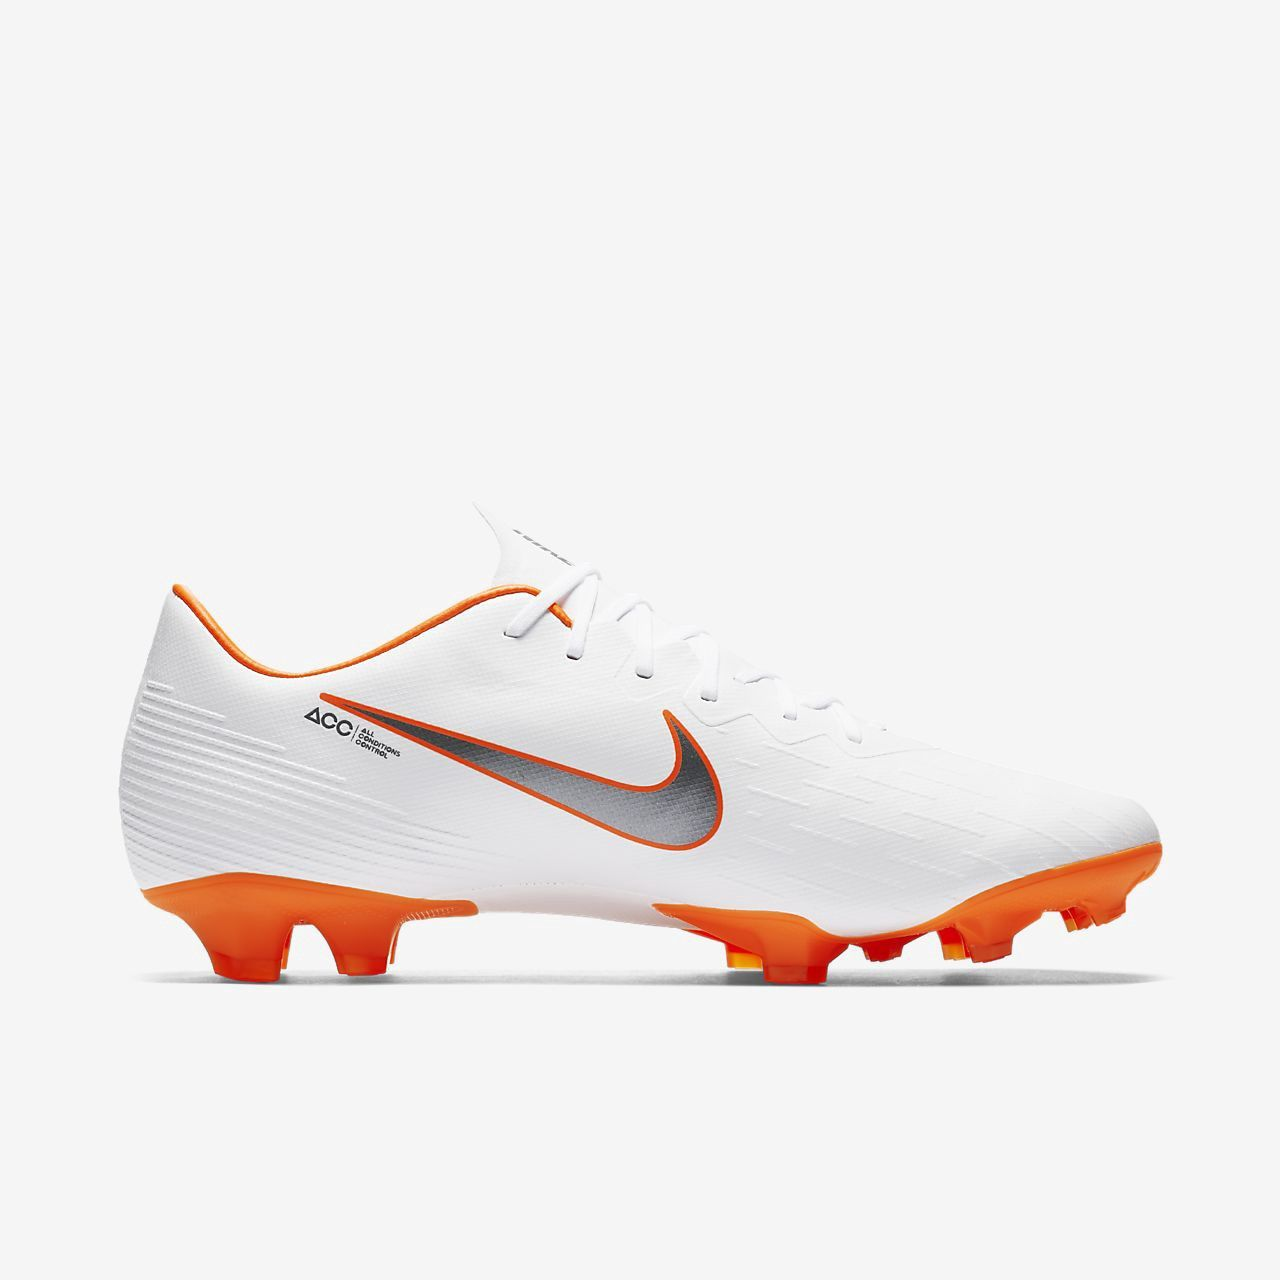 3b1c66b43 Nike Mercurial Vapor Xii Pro Just Do It Firm-Ground Soccer Cleat - M 11.5    W 13